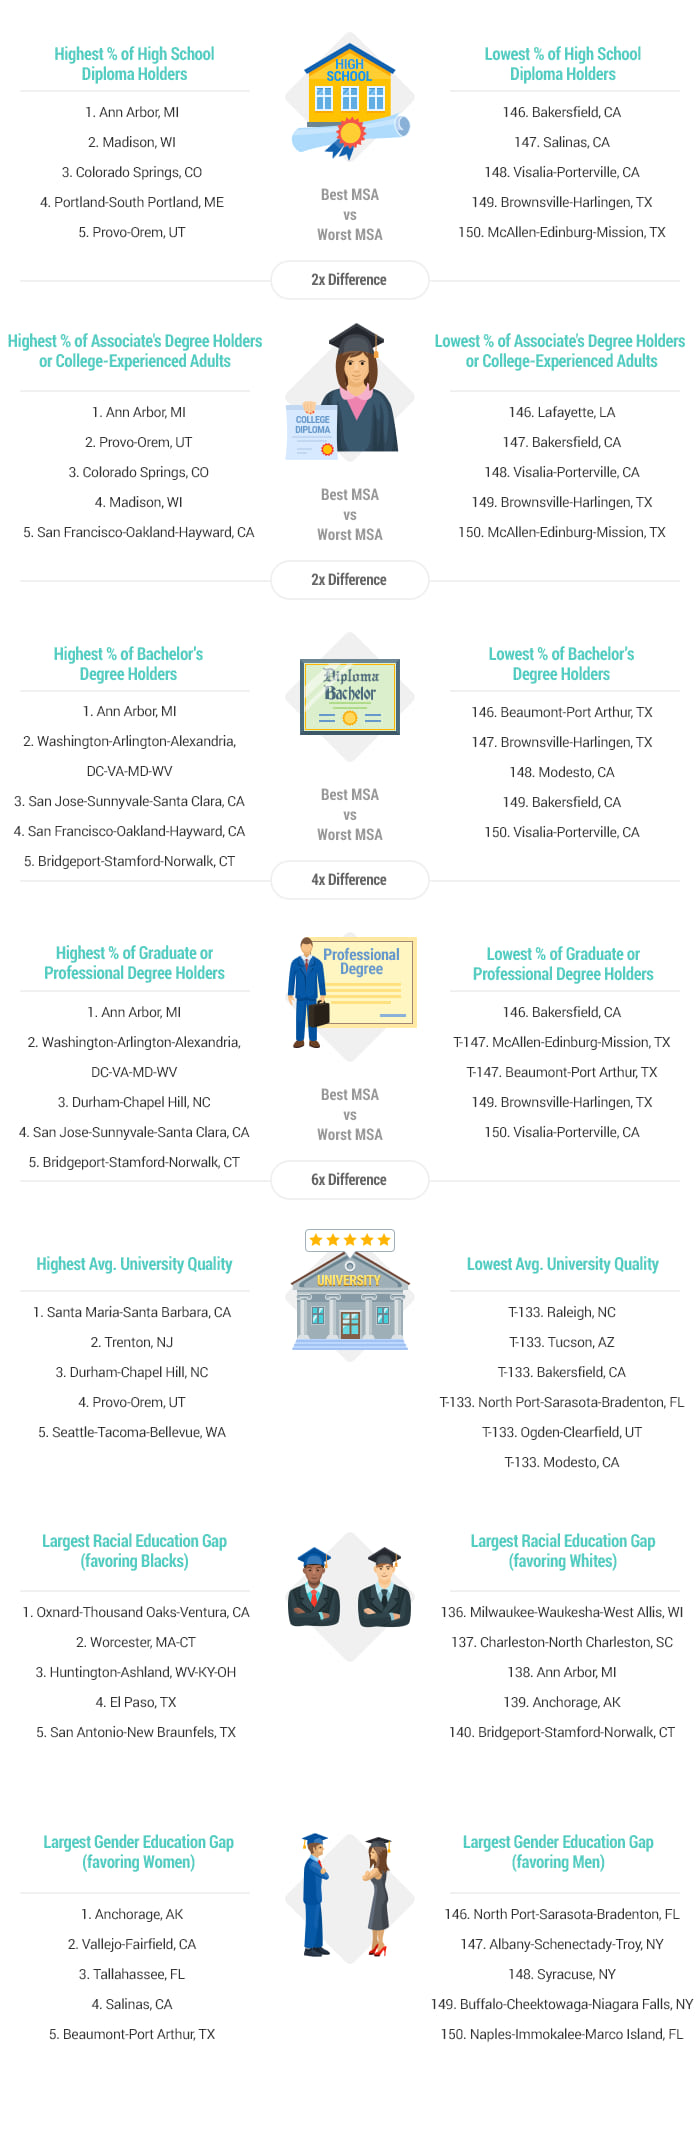 Artwork-2018-Most Educated Cities report-v2